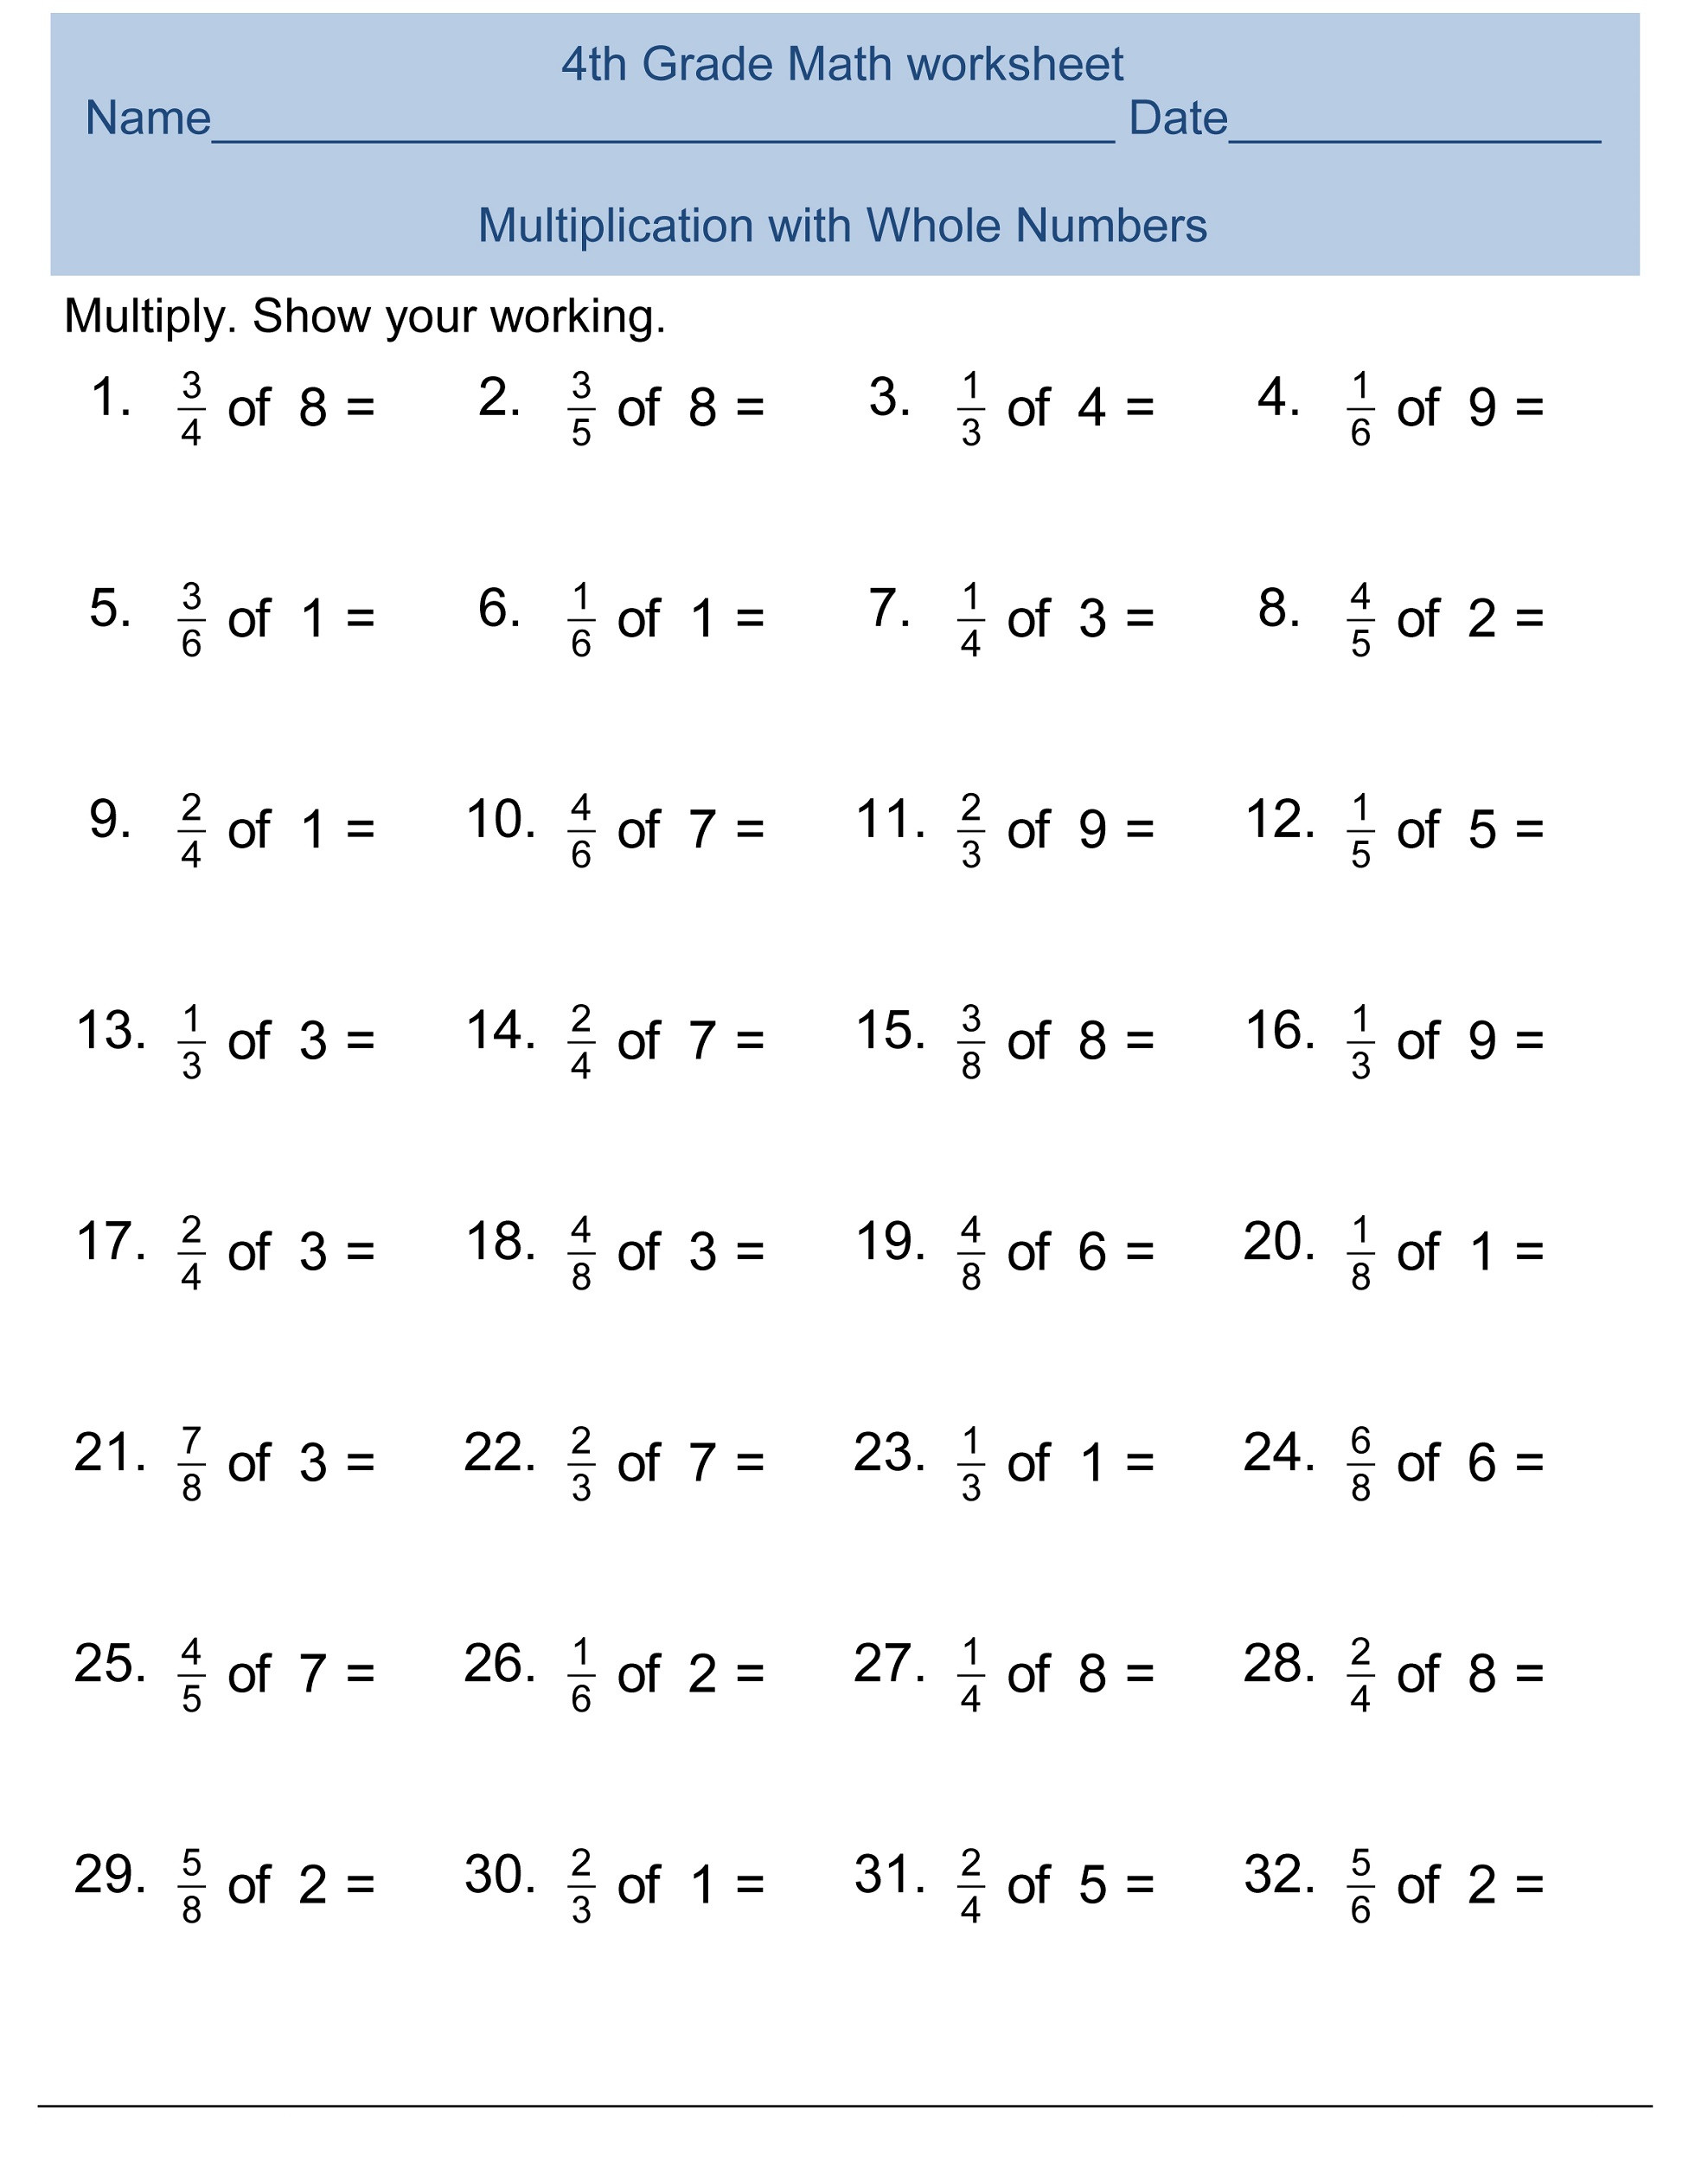 Multiplication Worksheets Grade 4 Pdf Free 4th Grade Math Worksheets Activity Shelter Fourth